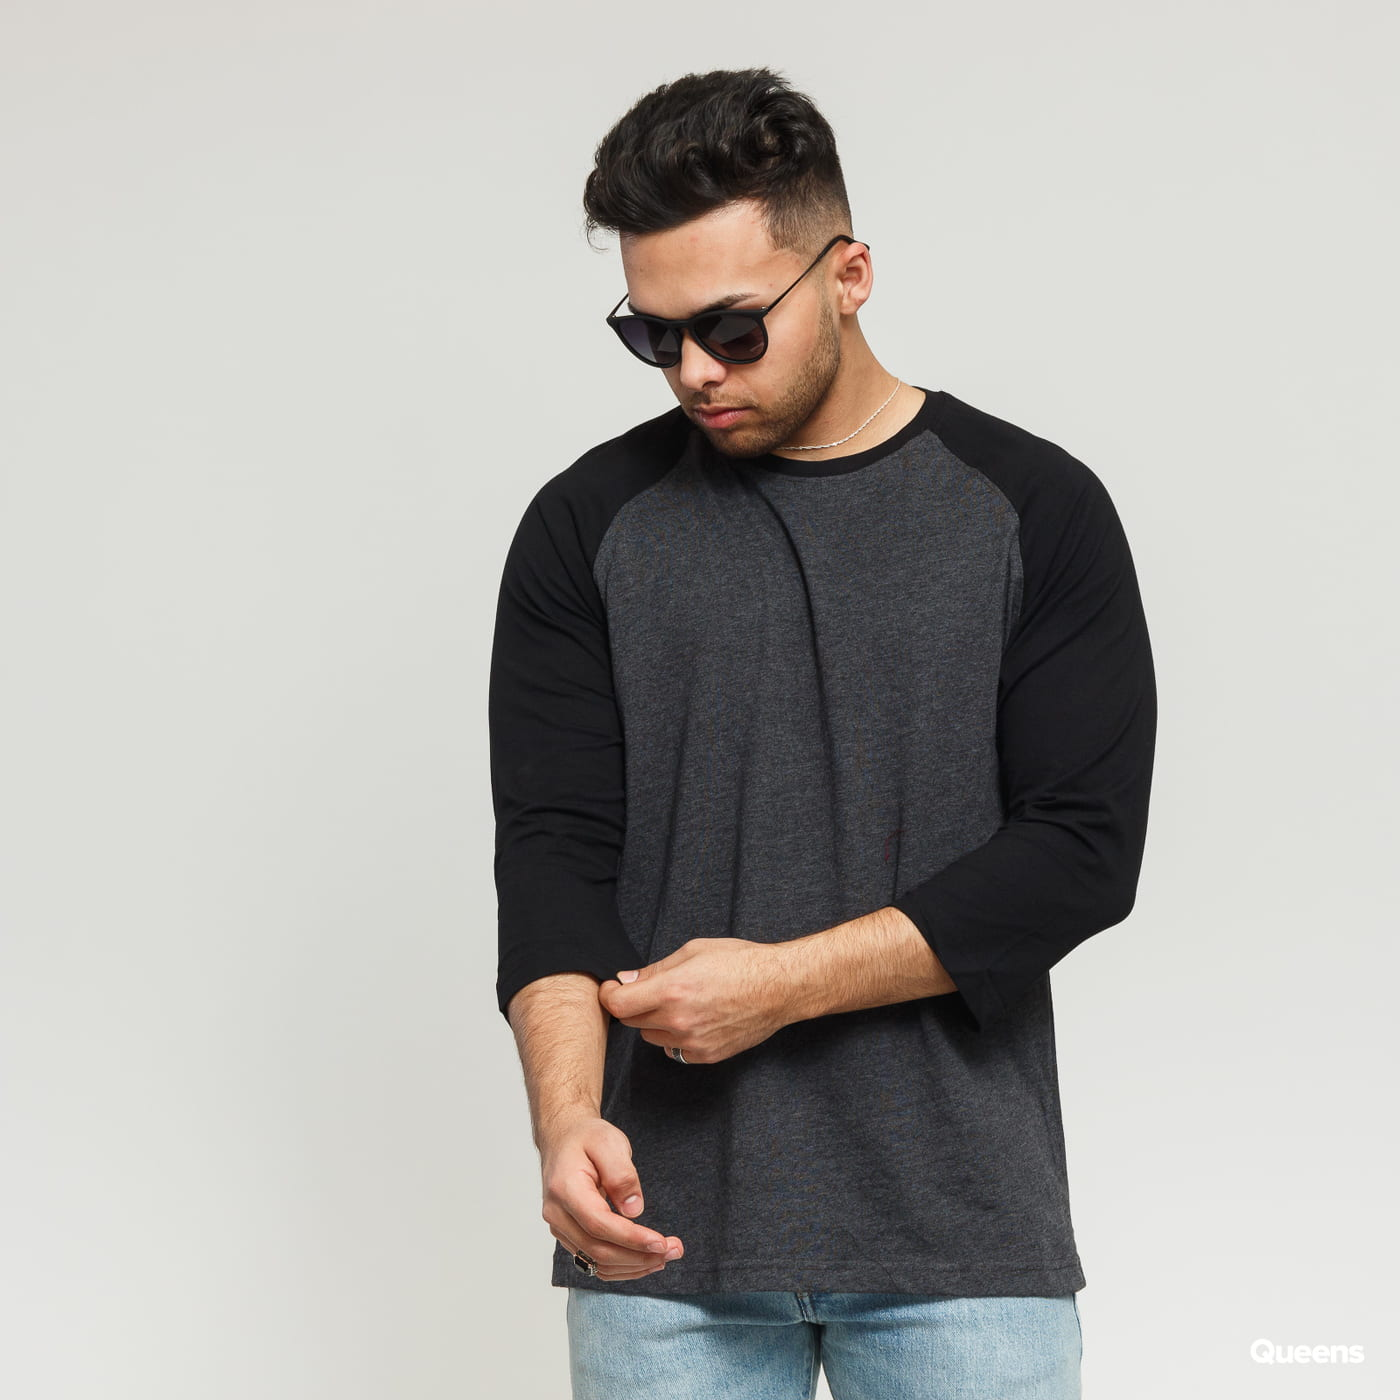 Urban Classics Contrast 3/4 Sleeve Raglan dark gray / black